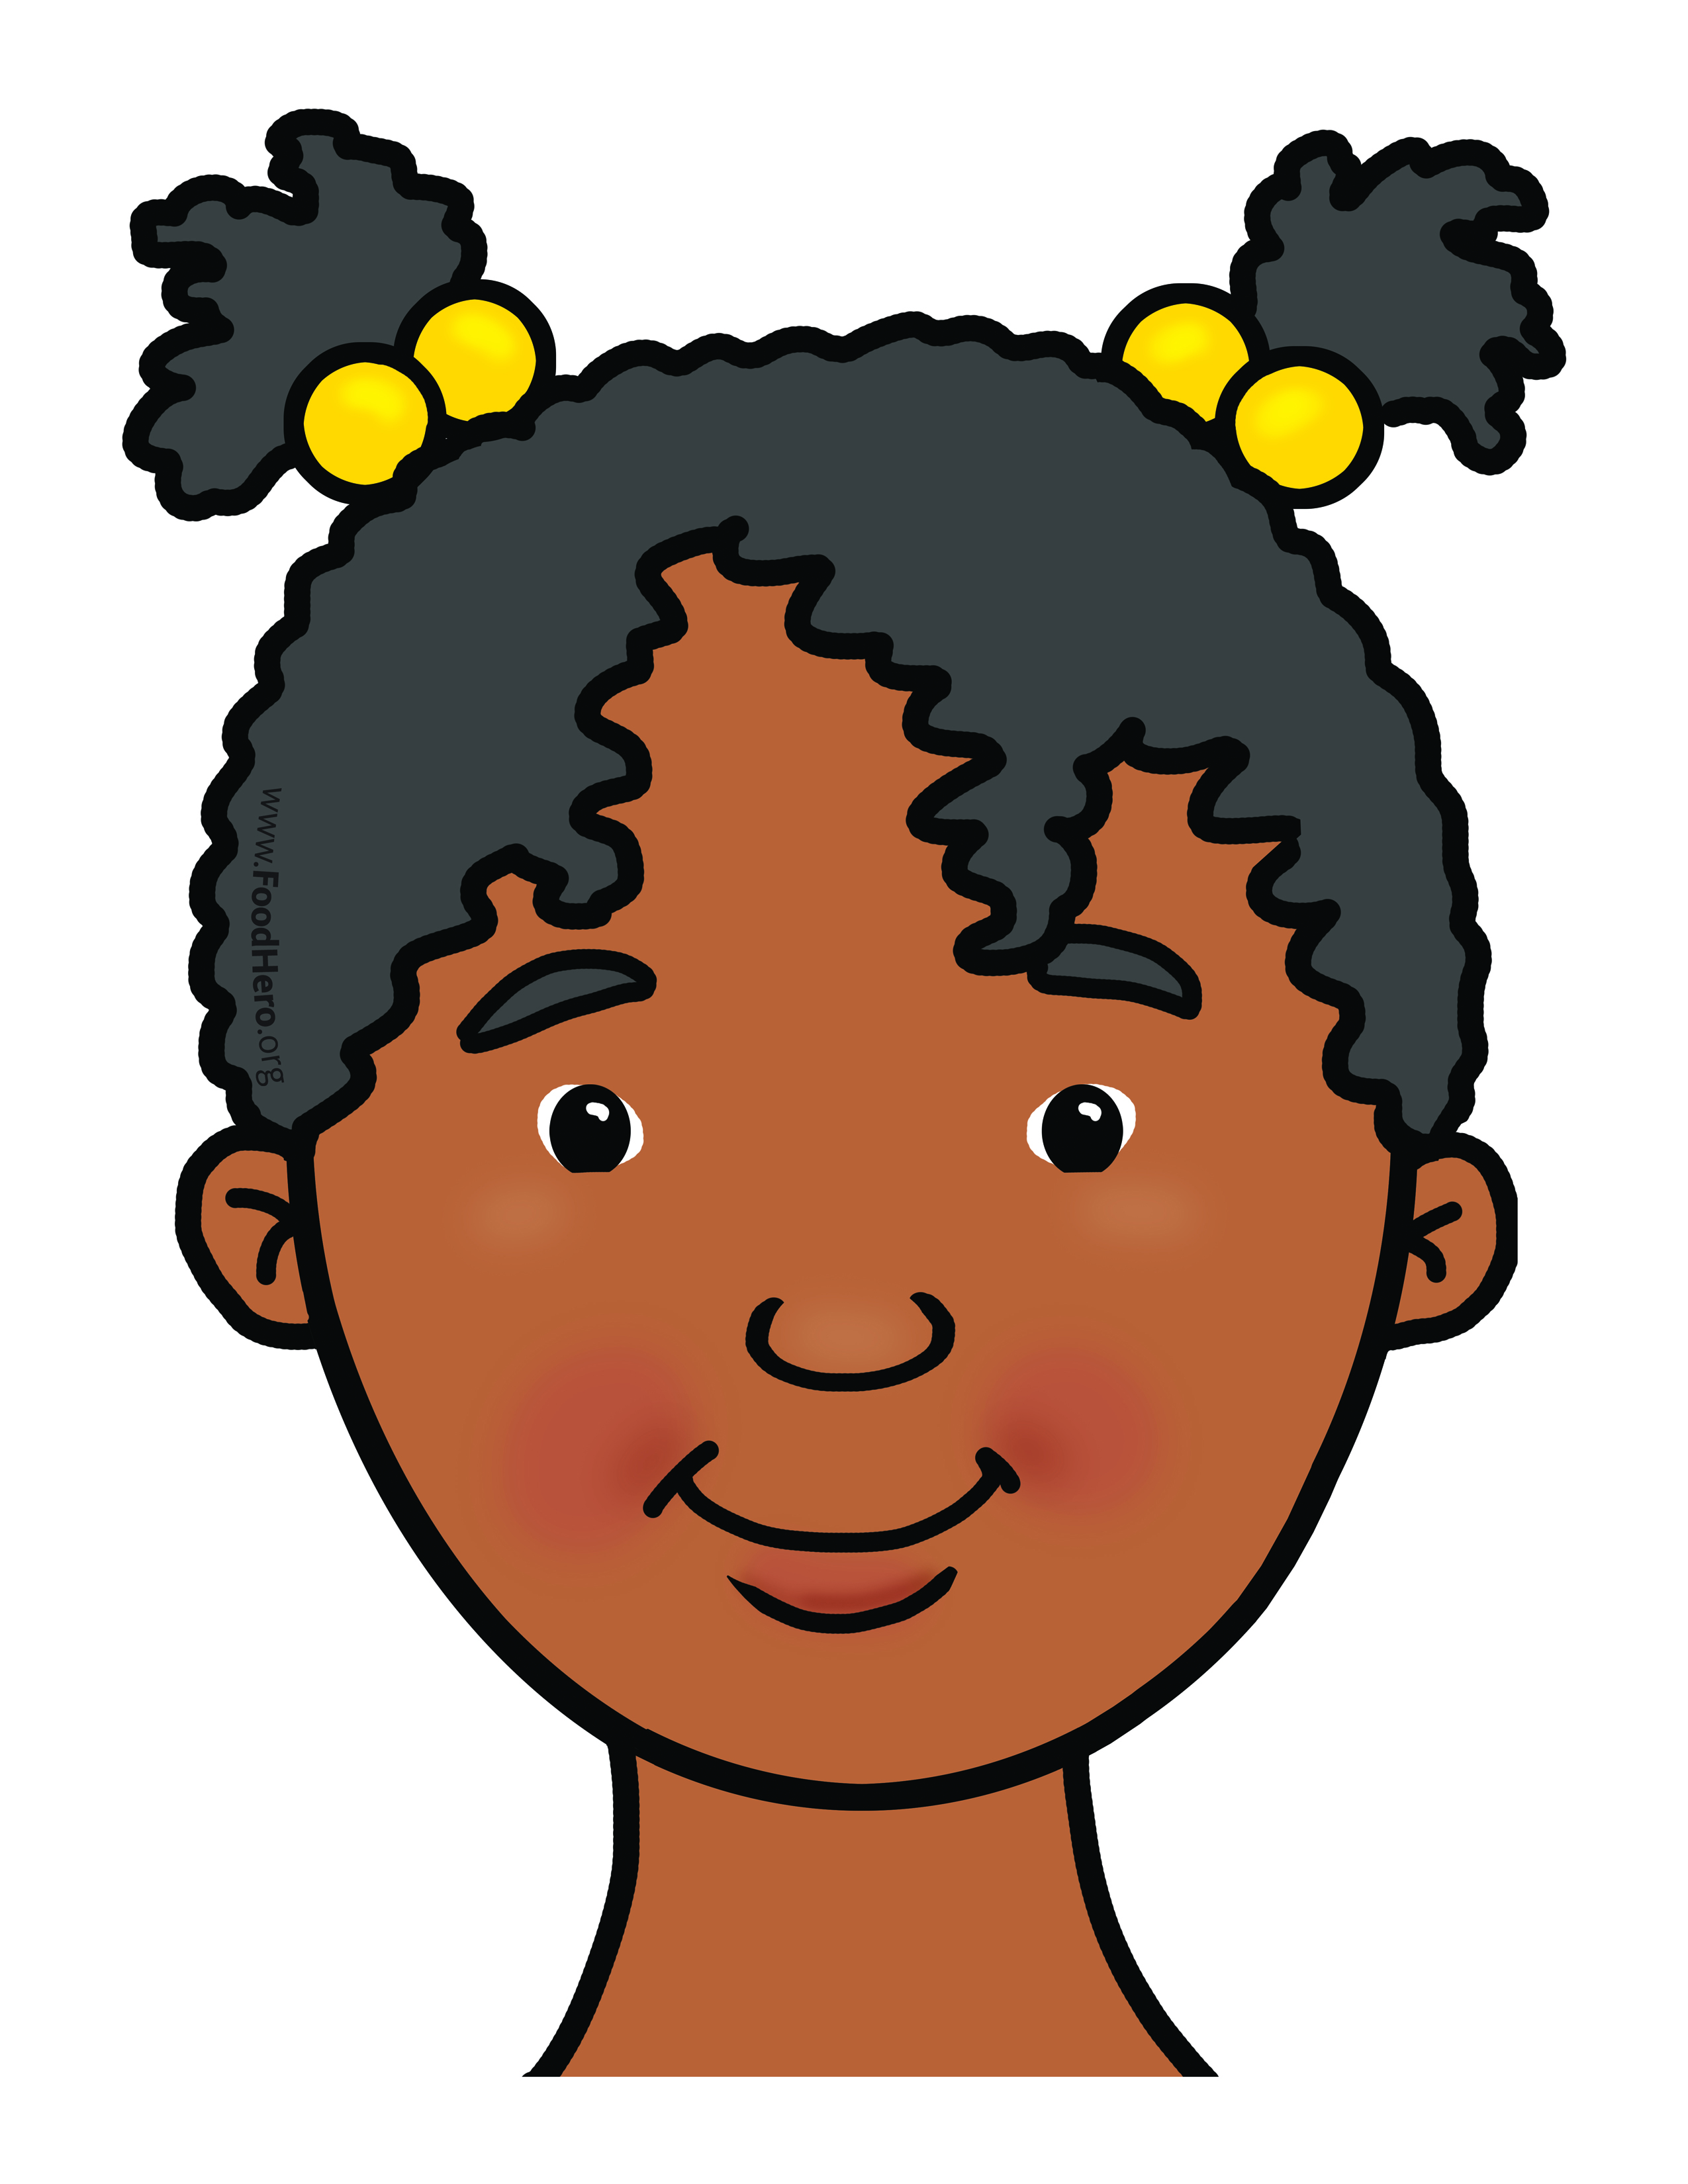 African american girl face clipart clipart images gallery.